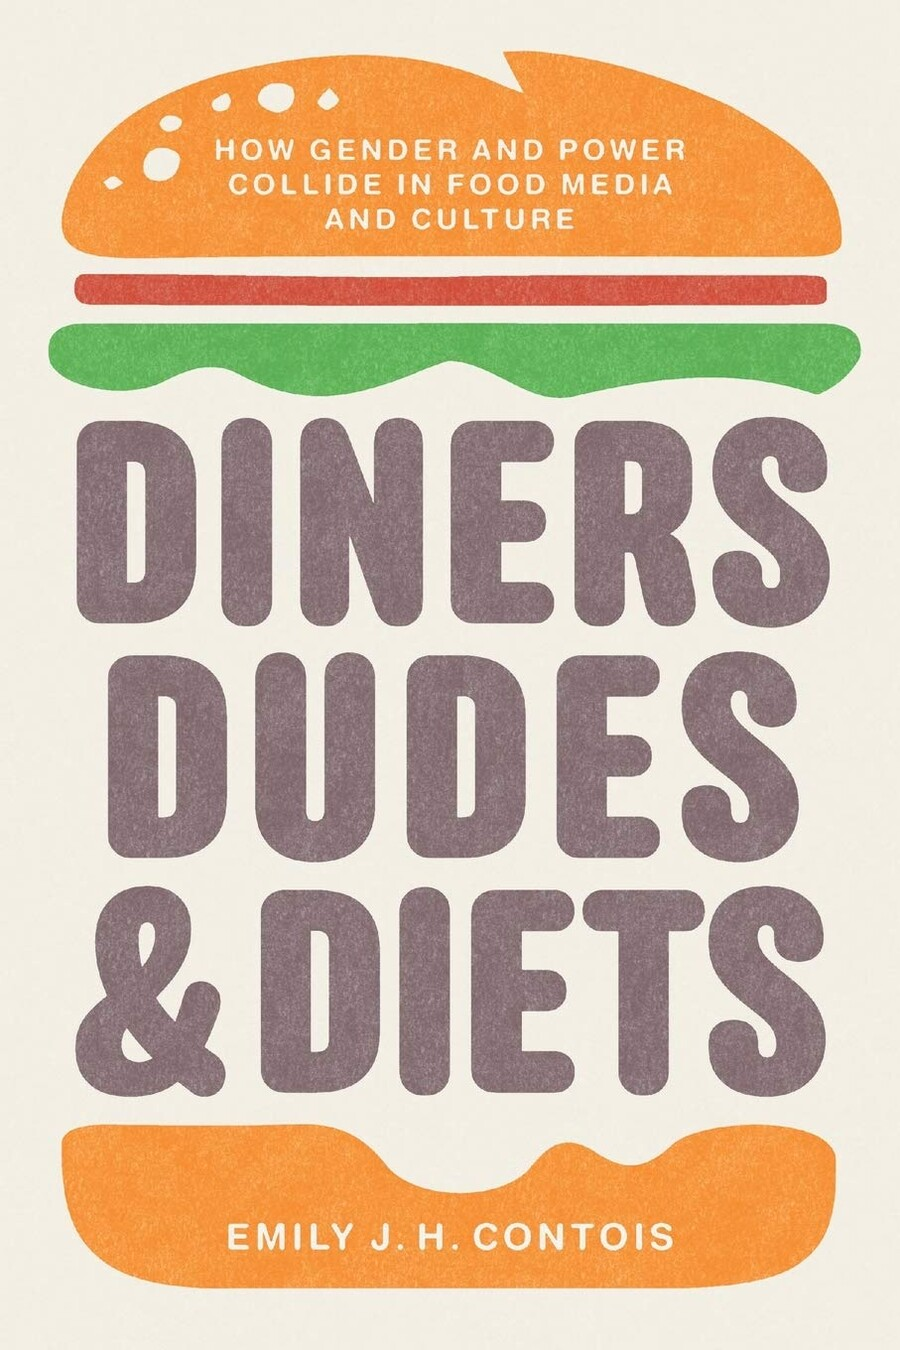 Diners, Dudes, and Diets, a white book cover, features an illustration of a cheeseburger with the title between the buns